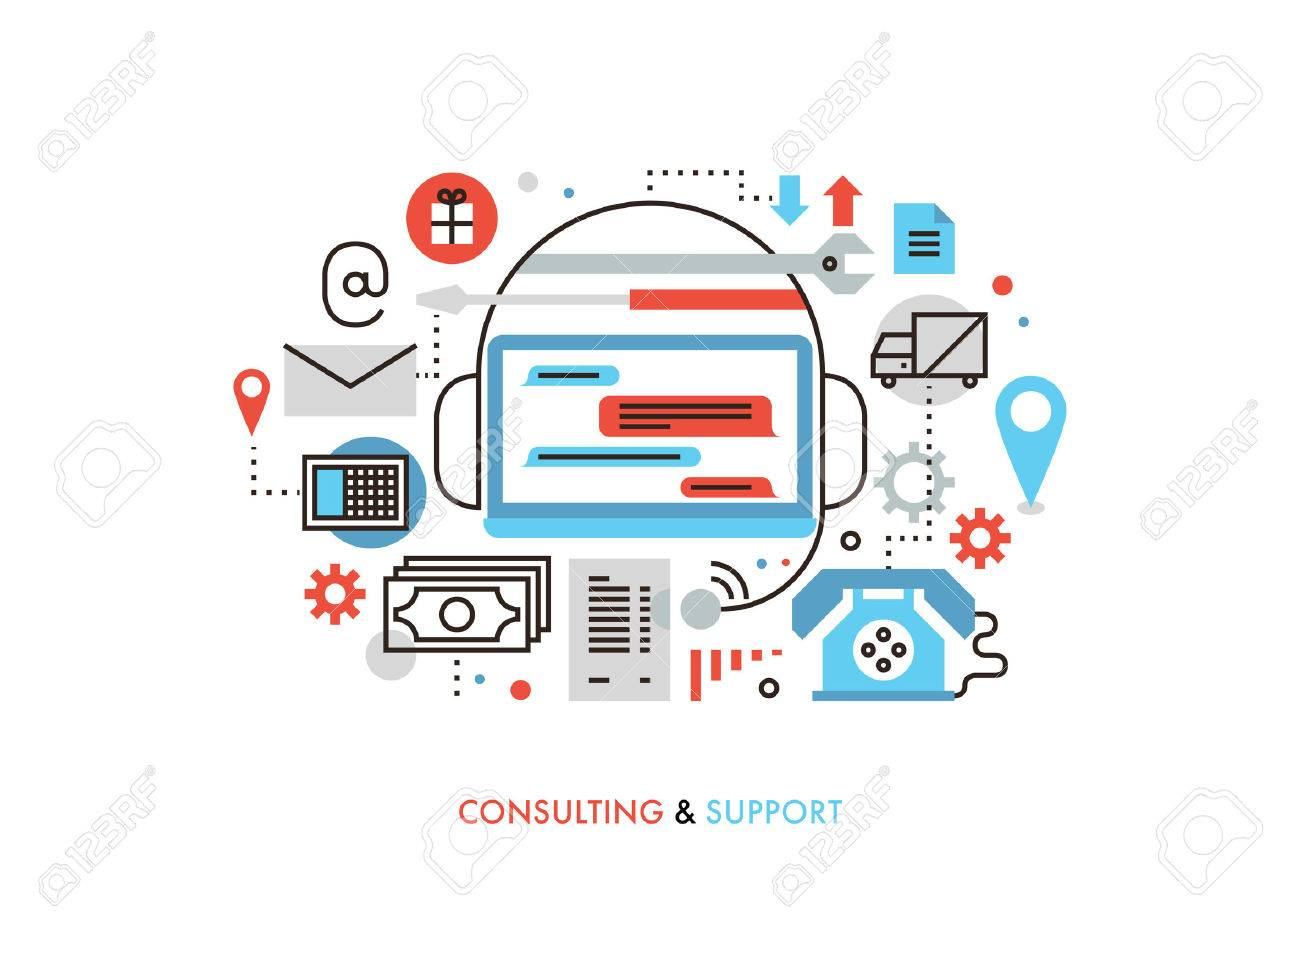 Thin line flat design of customer service information, technical support advice, online assistance by chat, business consulting center. Modern vector illustration concept, isolated on white background. - 42877818